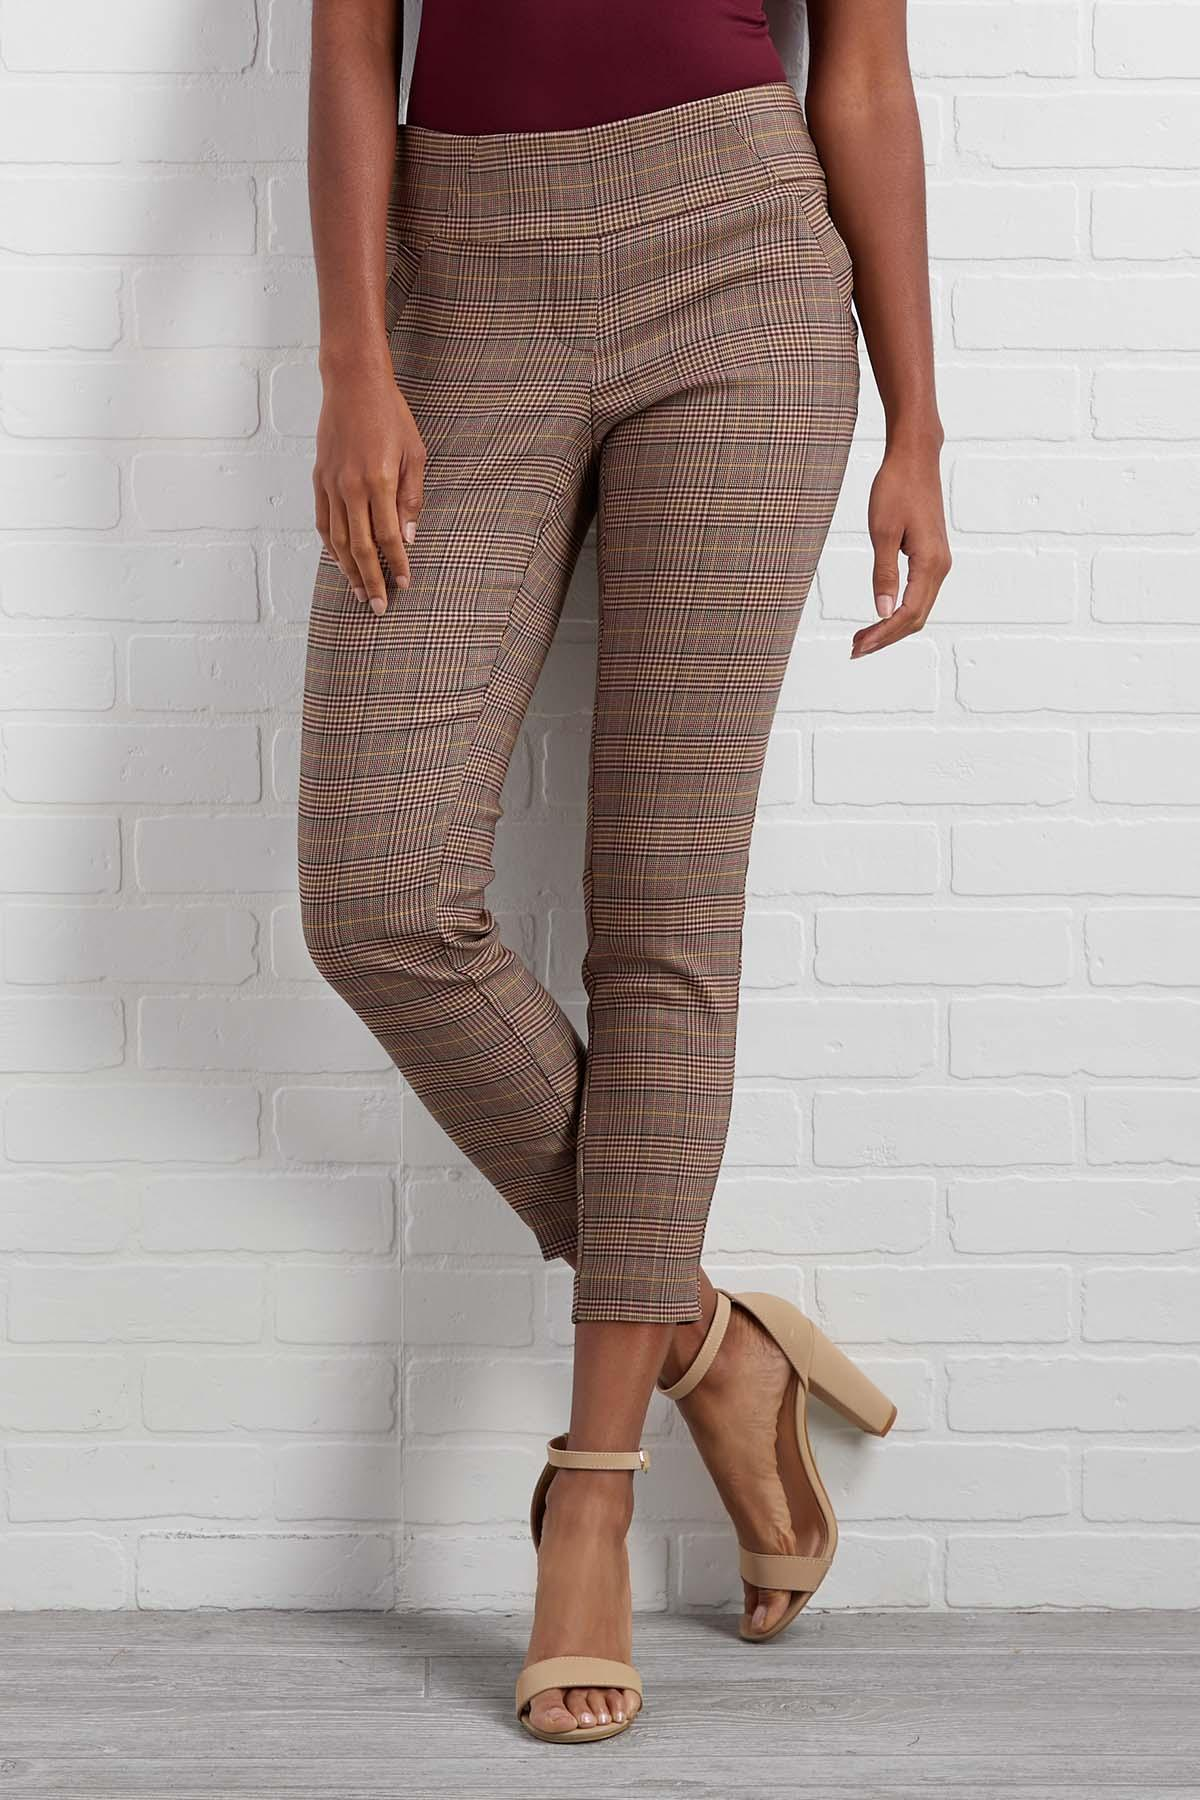 Autumn Afternoon Plaid Pants